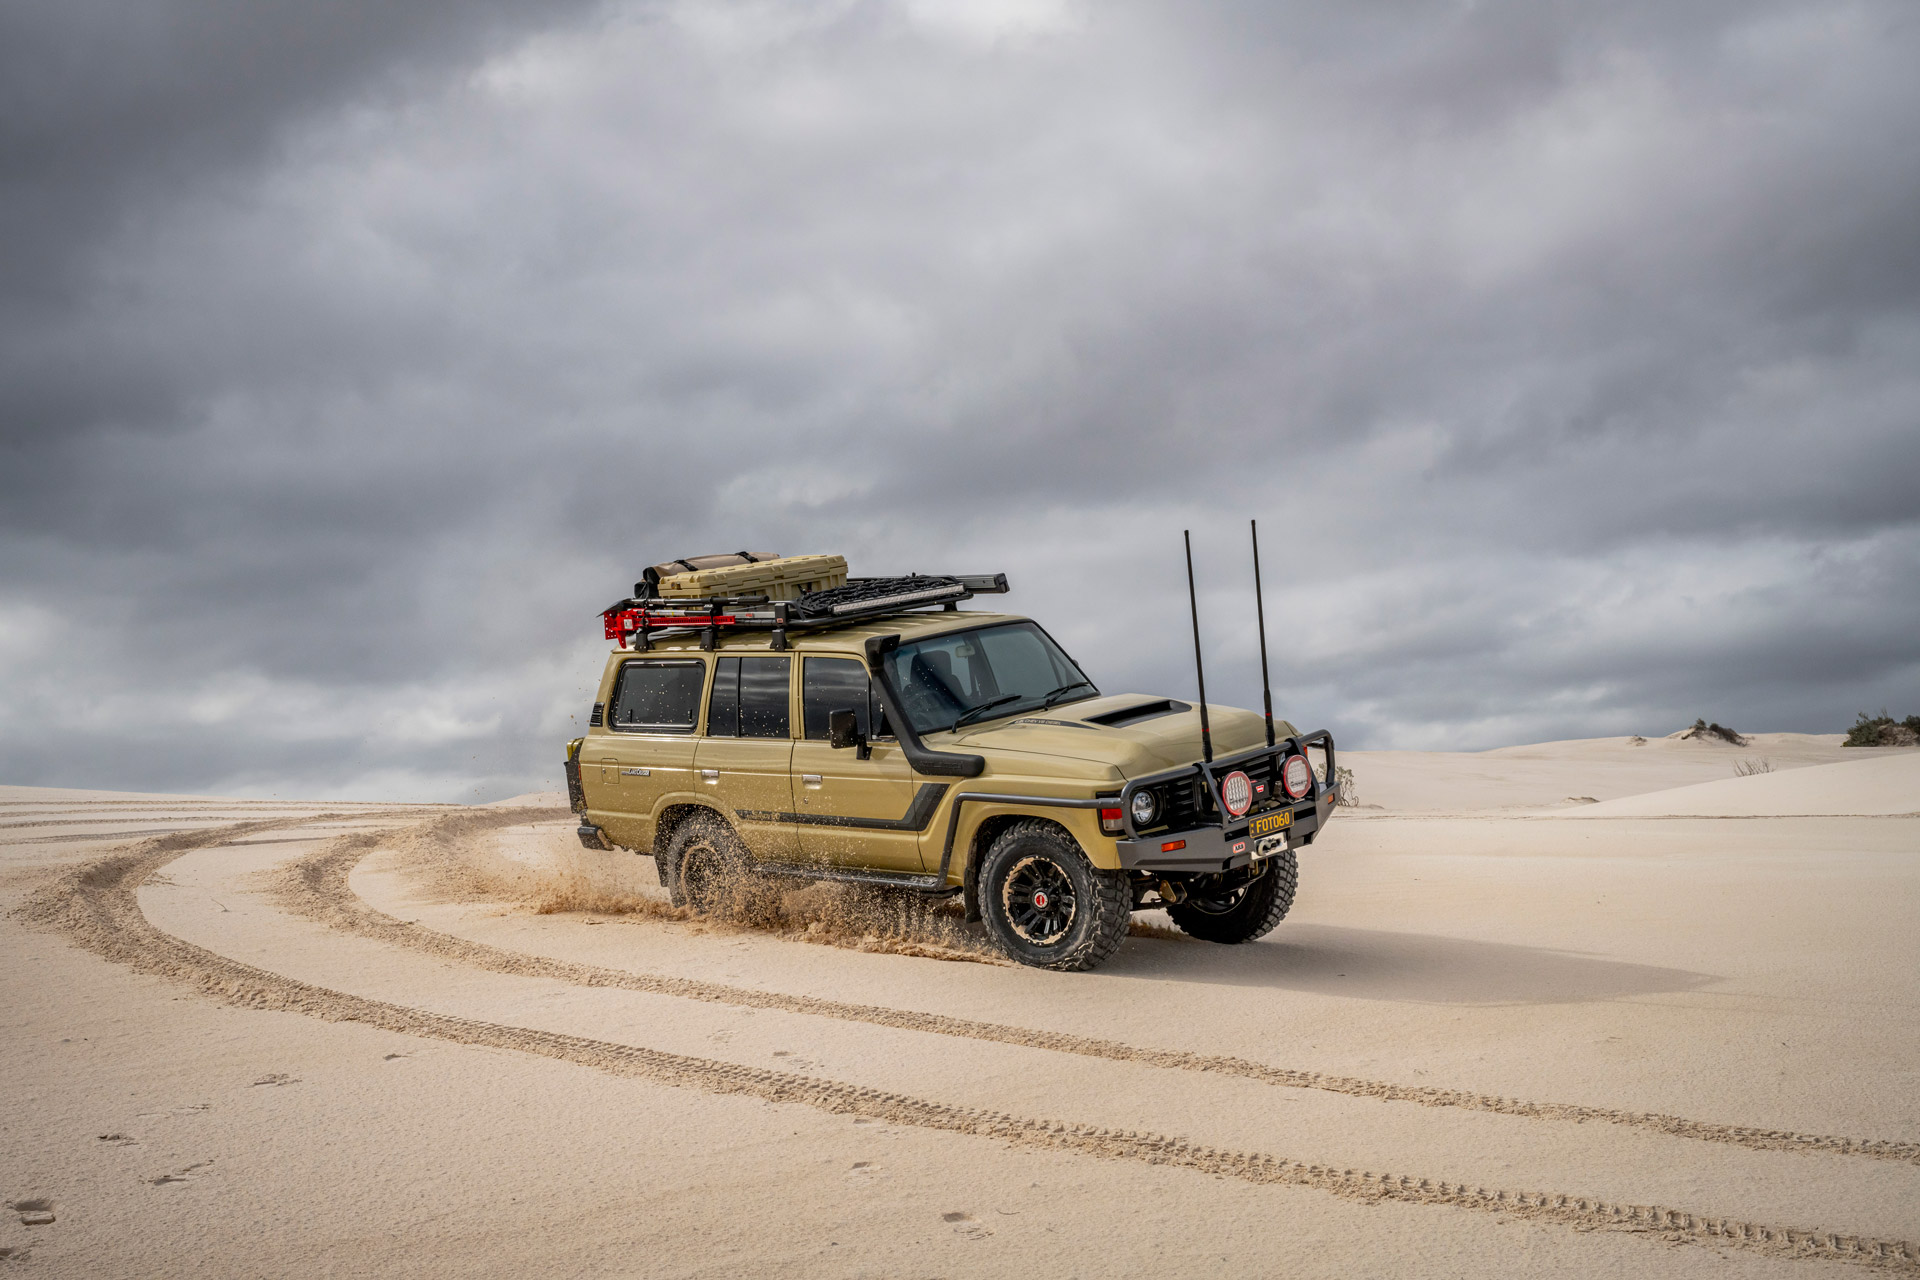 ROH Vapour wheels on Sandy 60 Series LandCruiser carving up the beach